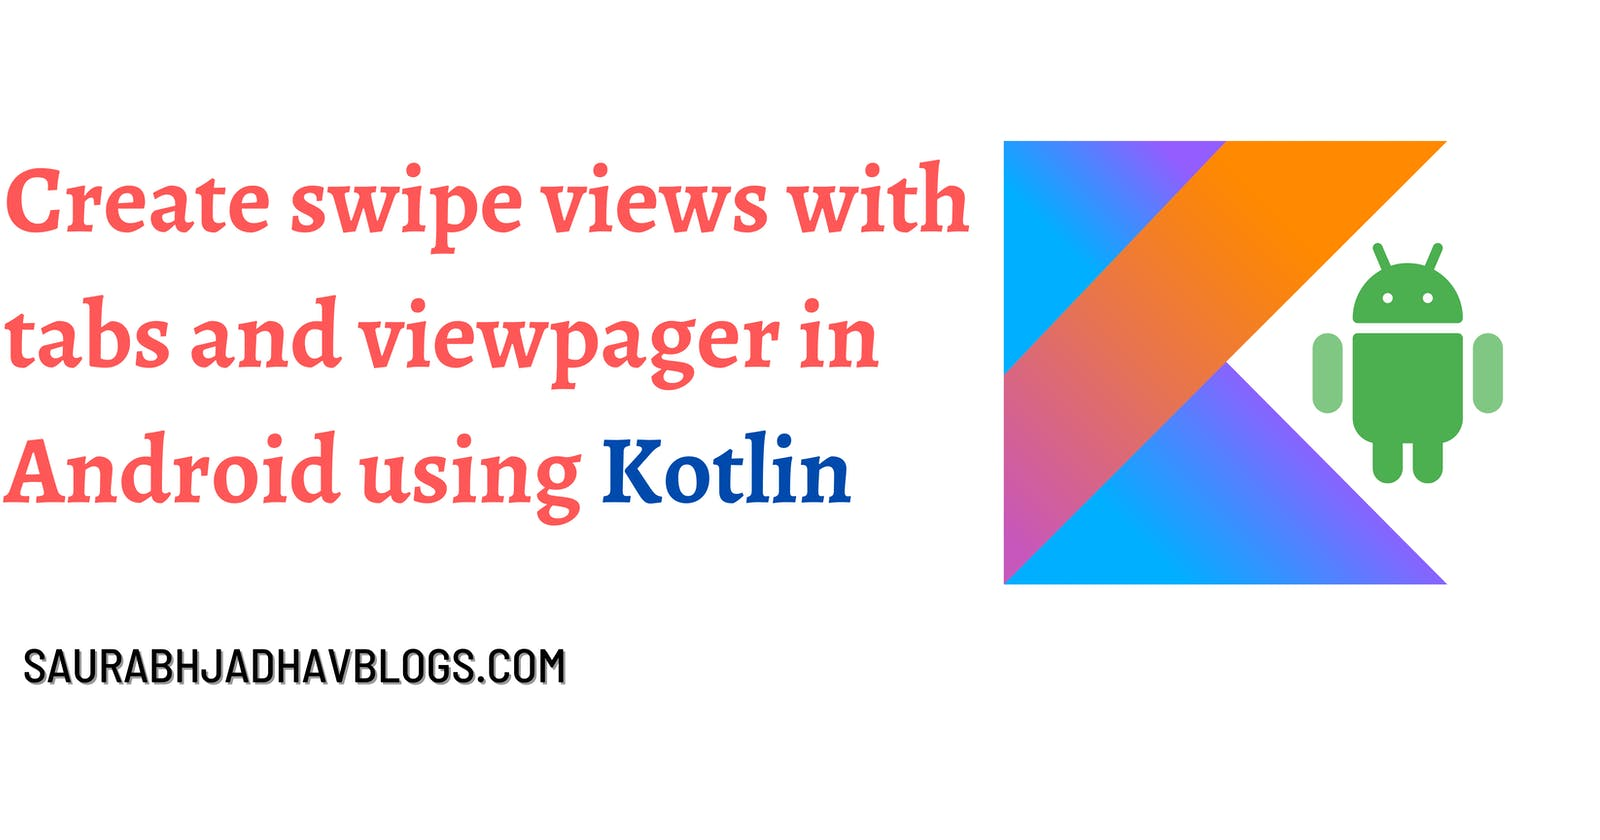 Create swipe views with tabs and viewpager in Android using Kotlin